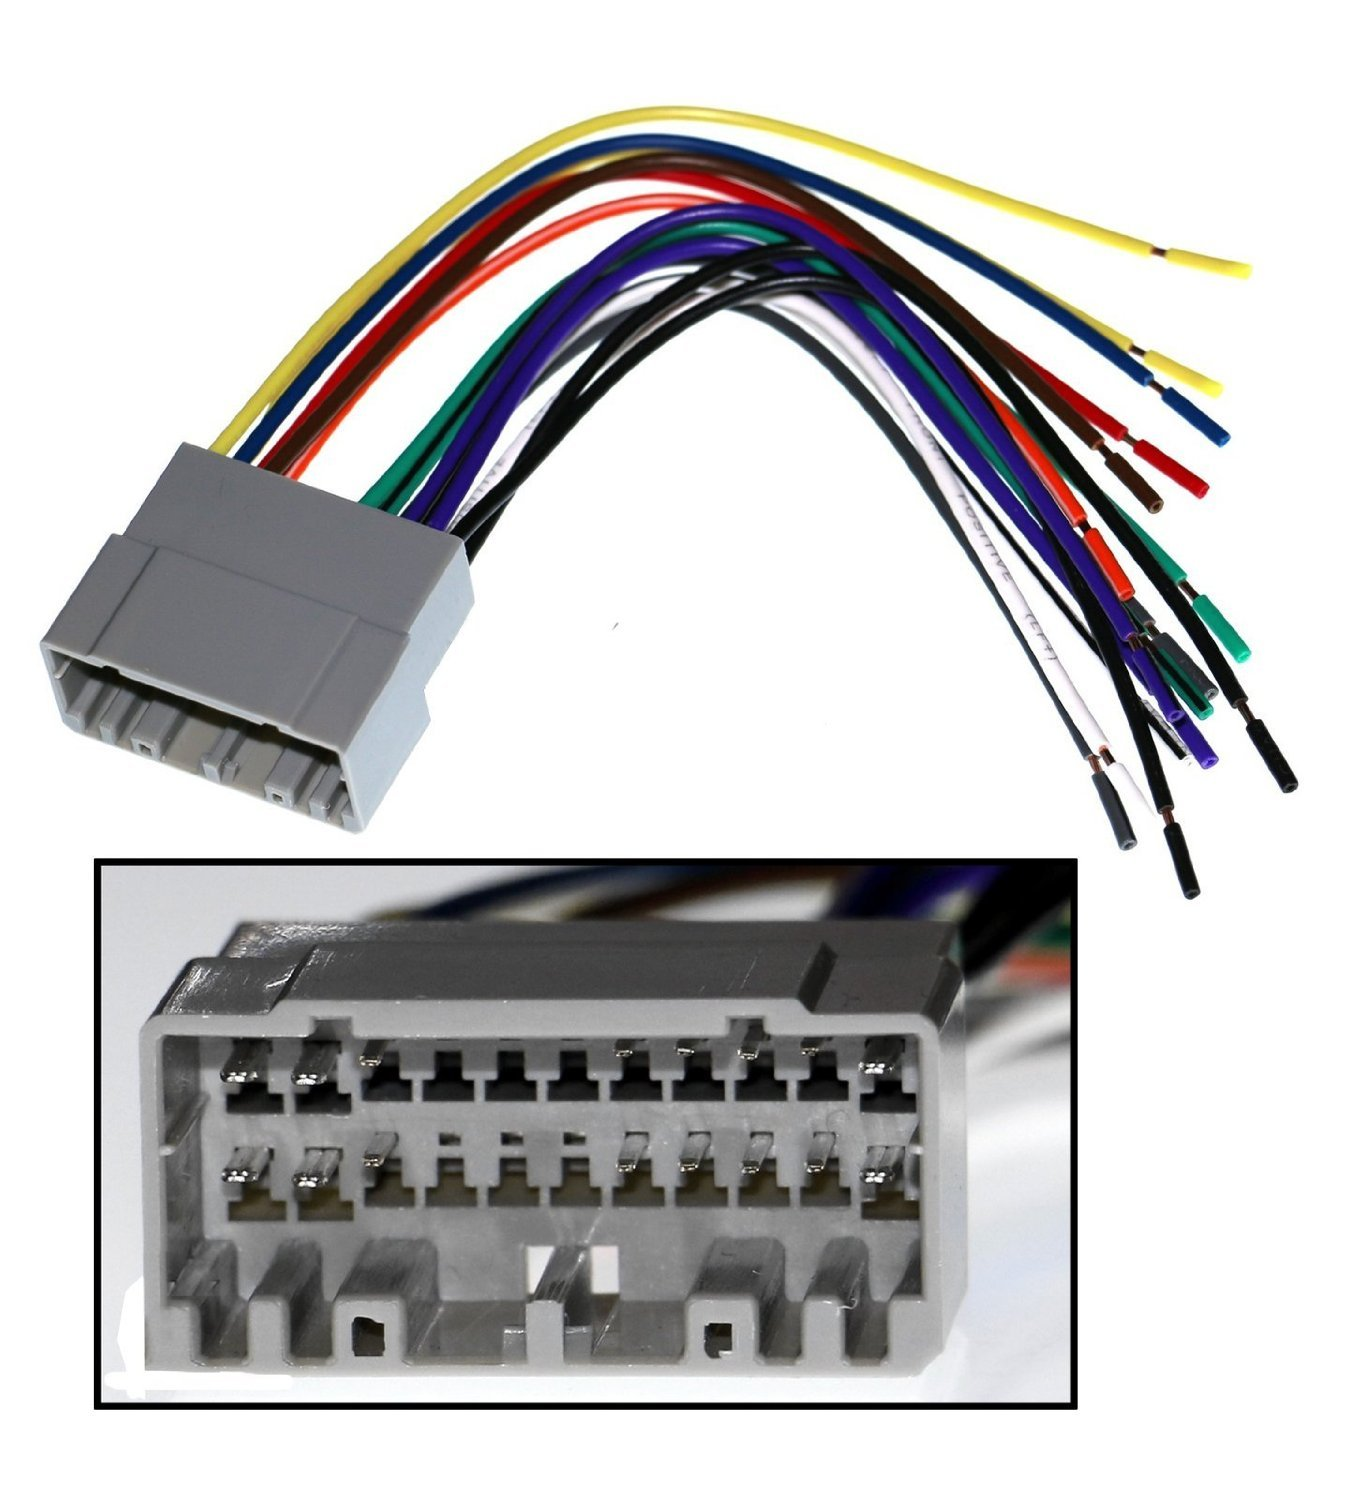 710Q%2BKgavVL._SL1500_ amazon com pioneer car stereo reciever dash install mounting car audio wiring harness kits at webbmarketing.co